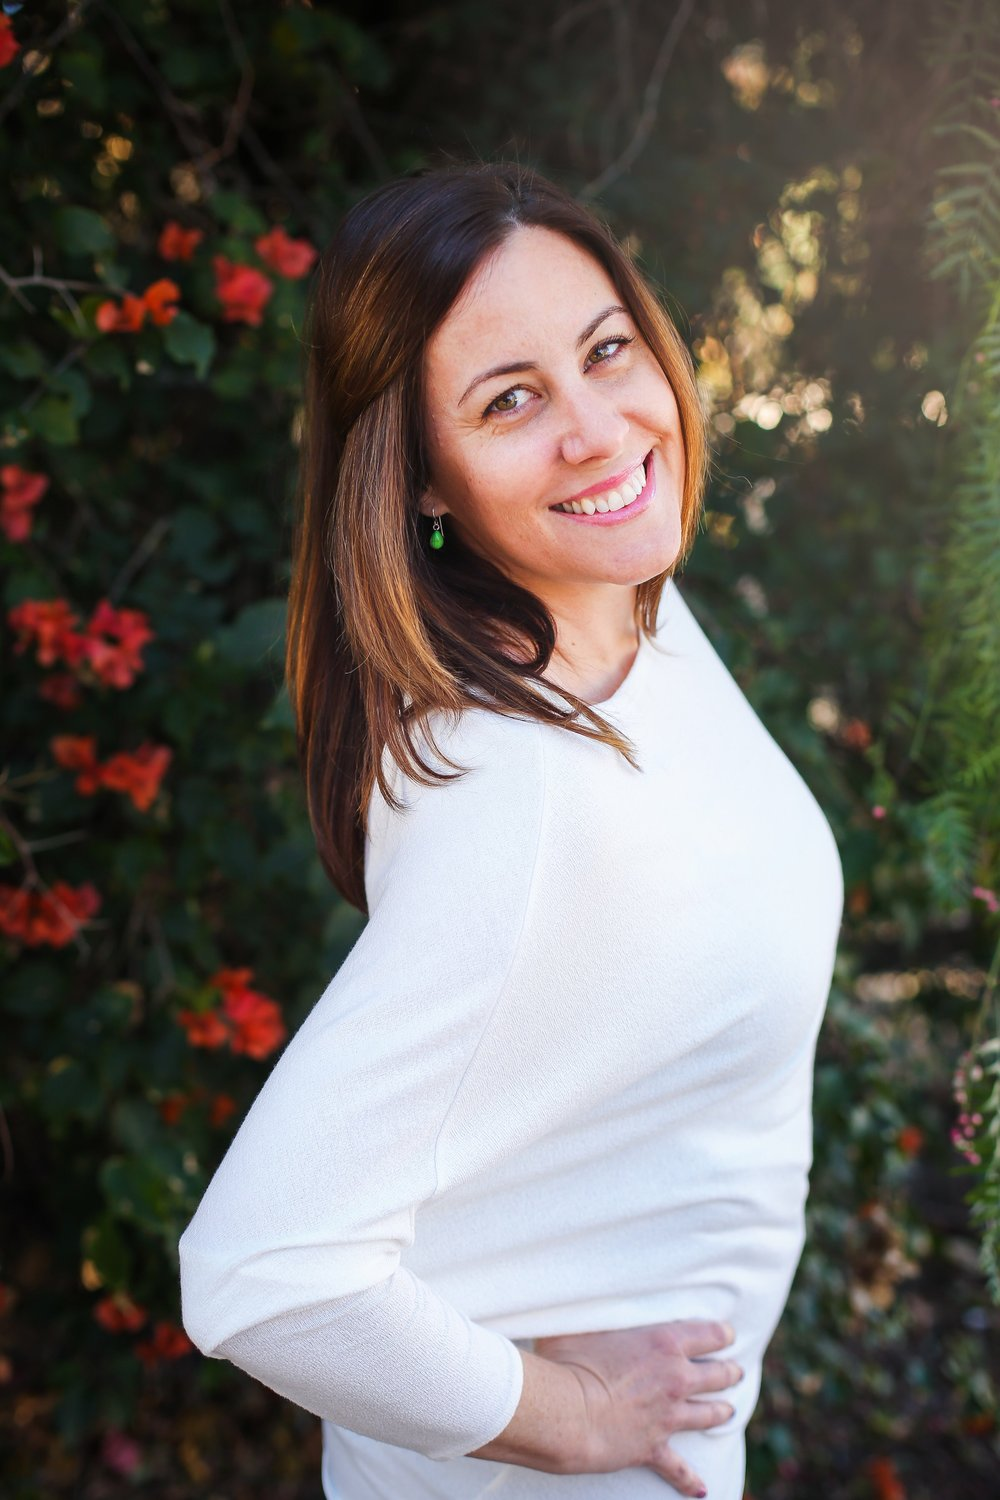 Holly Schaefer - Esthetician and Spa background over 20 years. Now Spa Director of the Fallbrook Wellness Spa and Co owner of HydraBeauty.